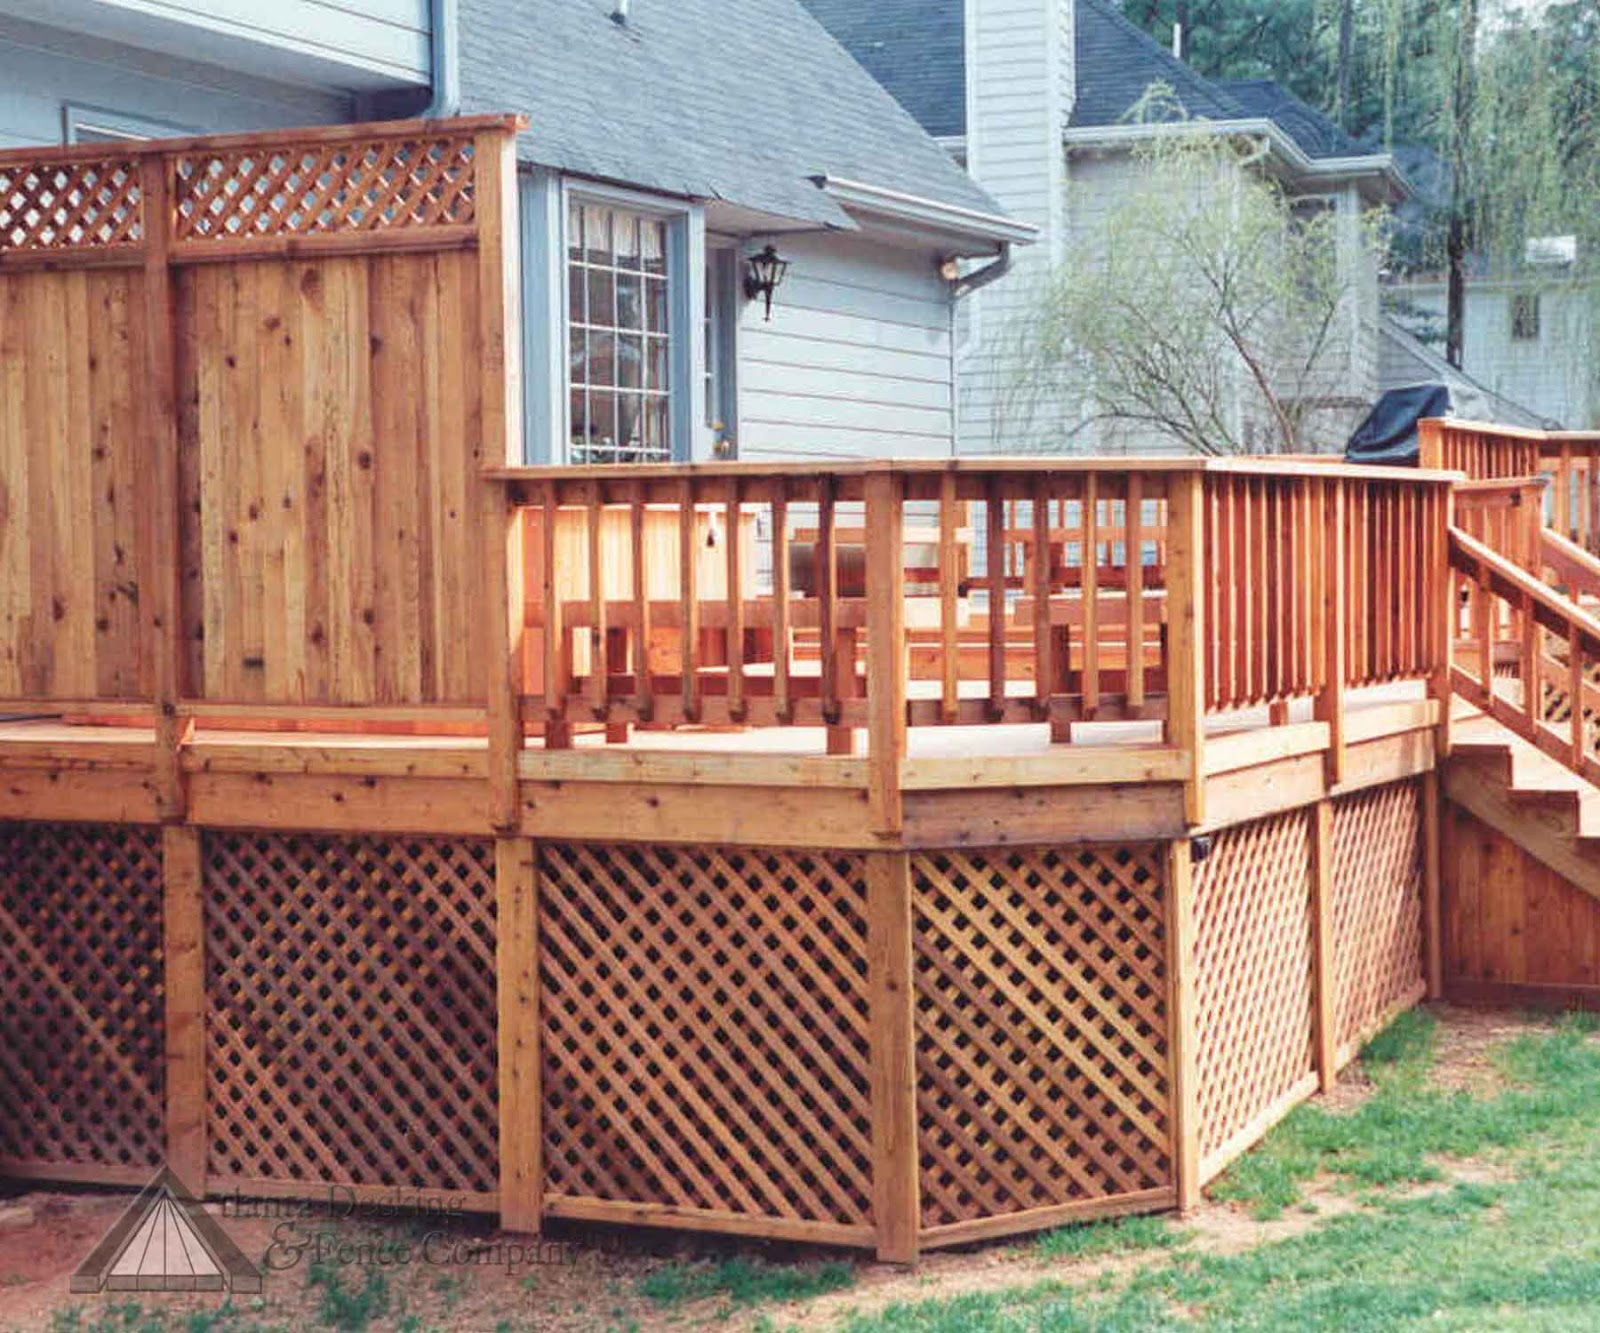 Amazing For Inspiration, I Found This Photo Of A Deck Railing/ Screen Combo That We  Liked And Started Brainstorming About How To Built It.